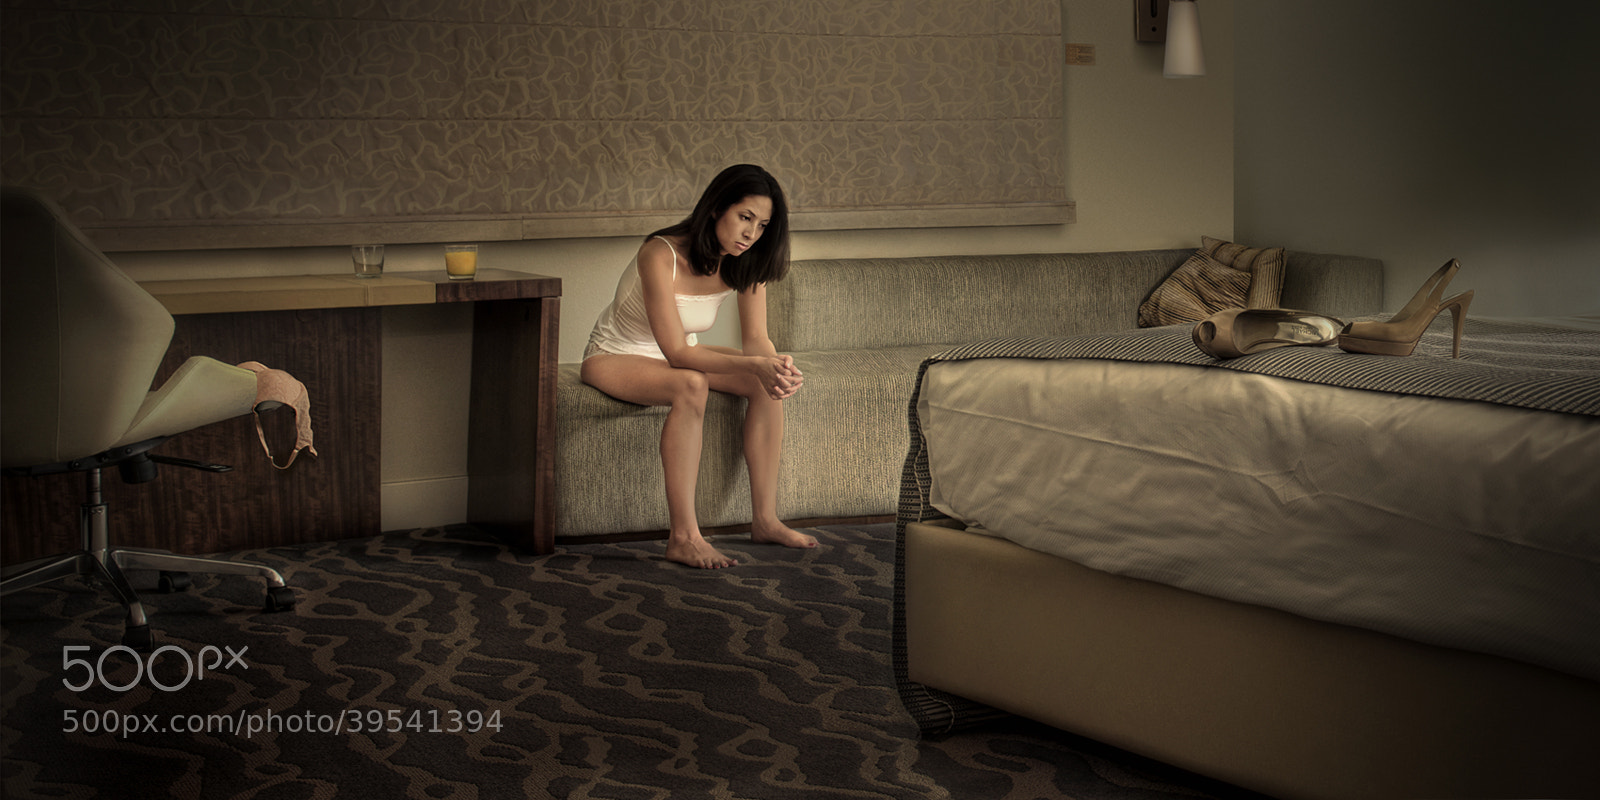 Photograph Lost in Room (Miami, Fl) by Julien Dumas on 500px